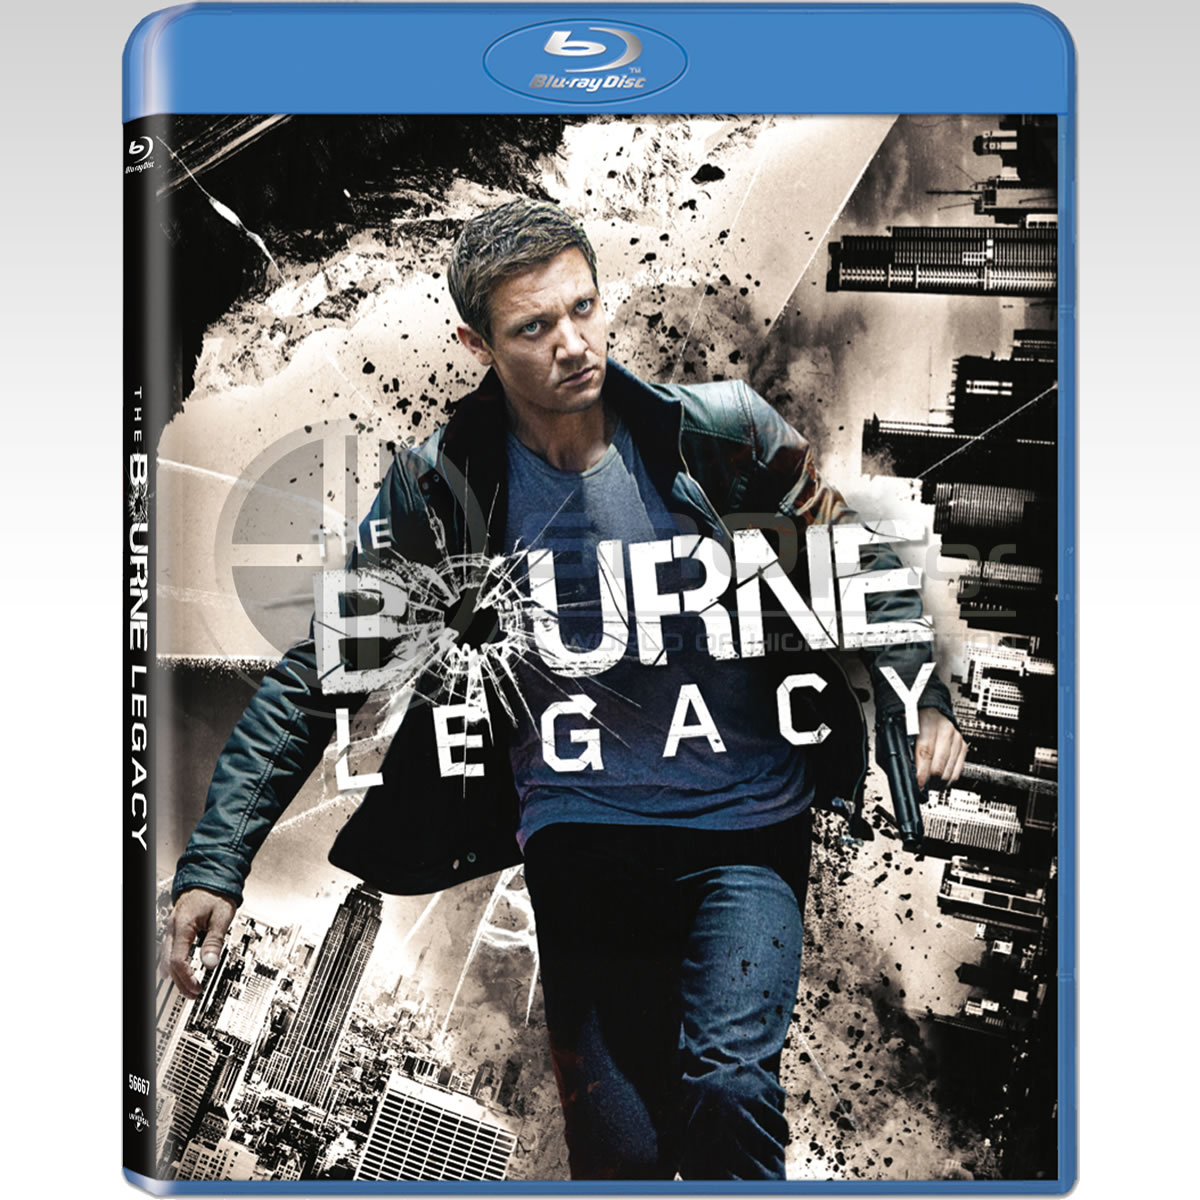 THE BOURNE LEGACY - Η ΚΛΗΡΟΝΟΜΙΑ ΤΟΥ ΜΠΟΡΝ Bullet Special Edition (BLU-RAY)